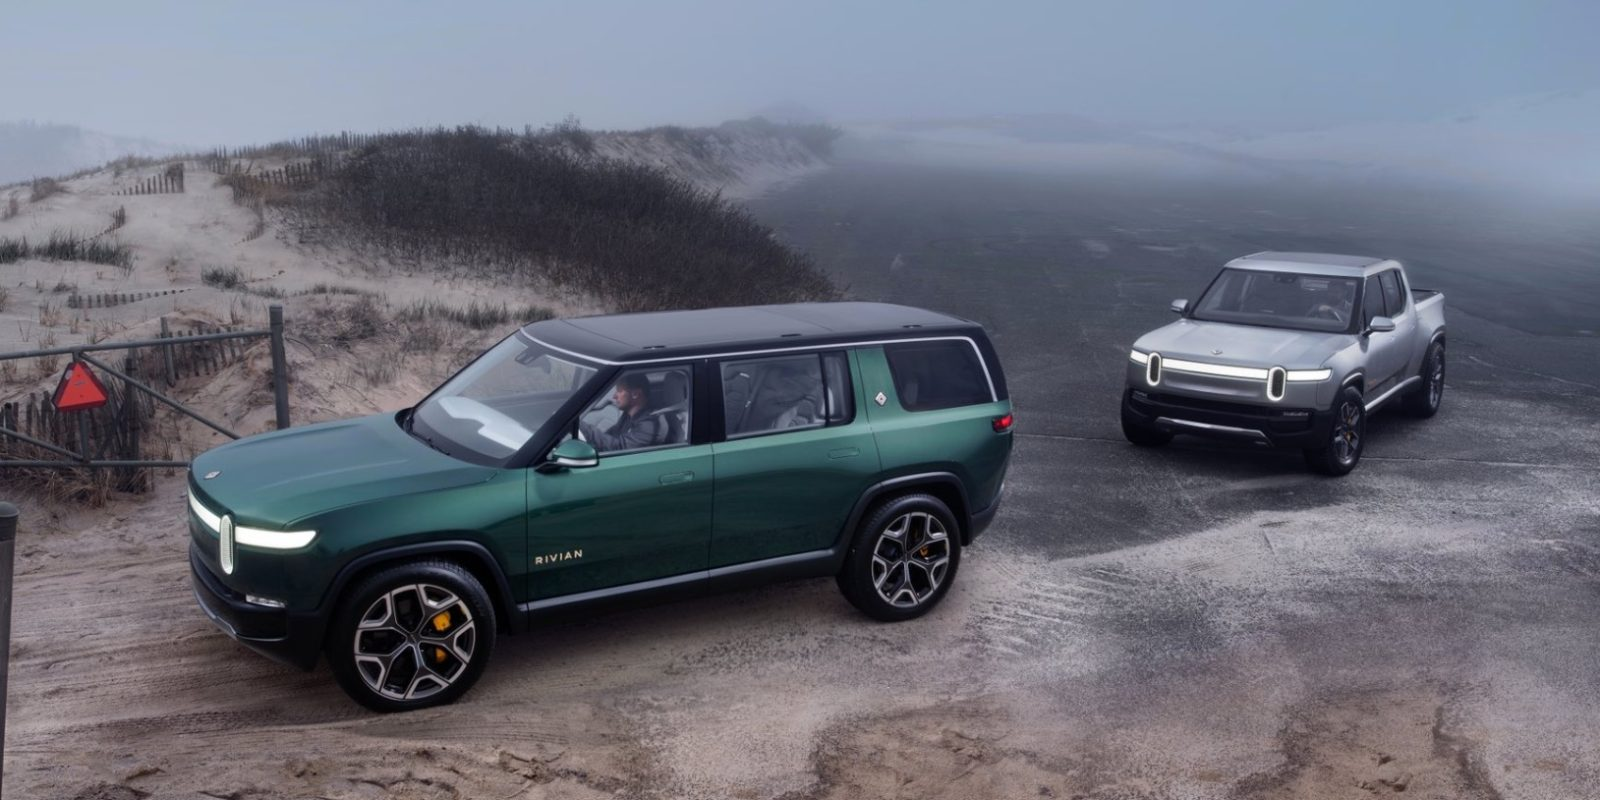 Rivian will offer electrochromic glass roof for its electric pickup truck and SUV